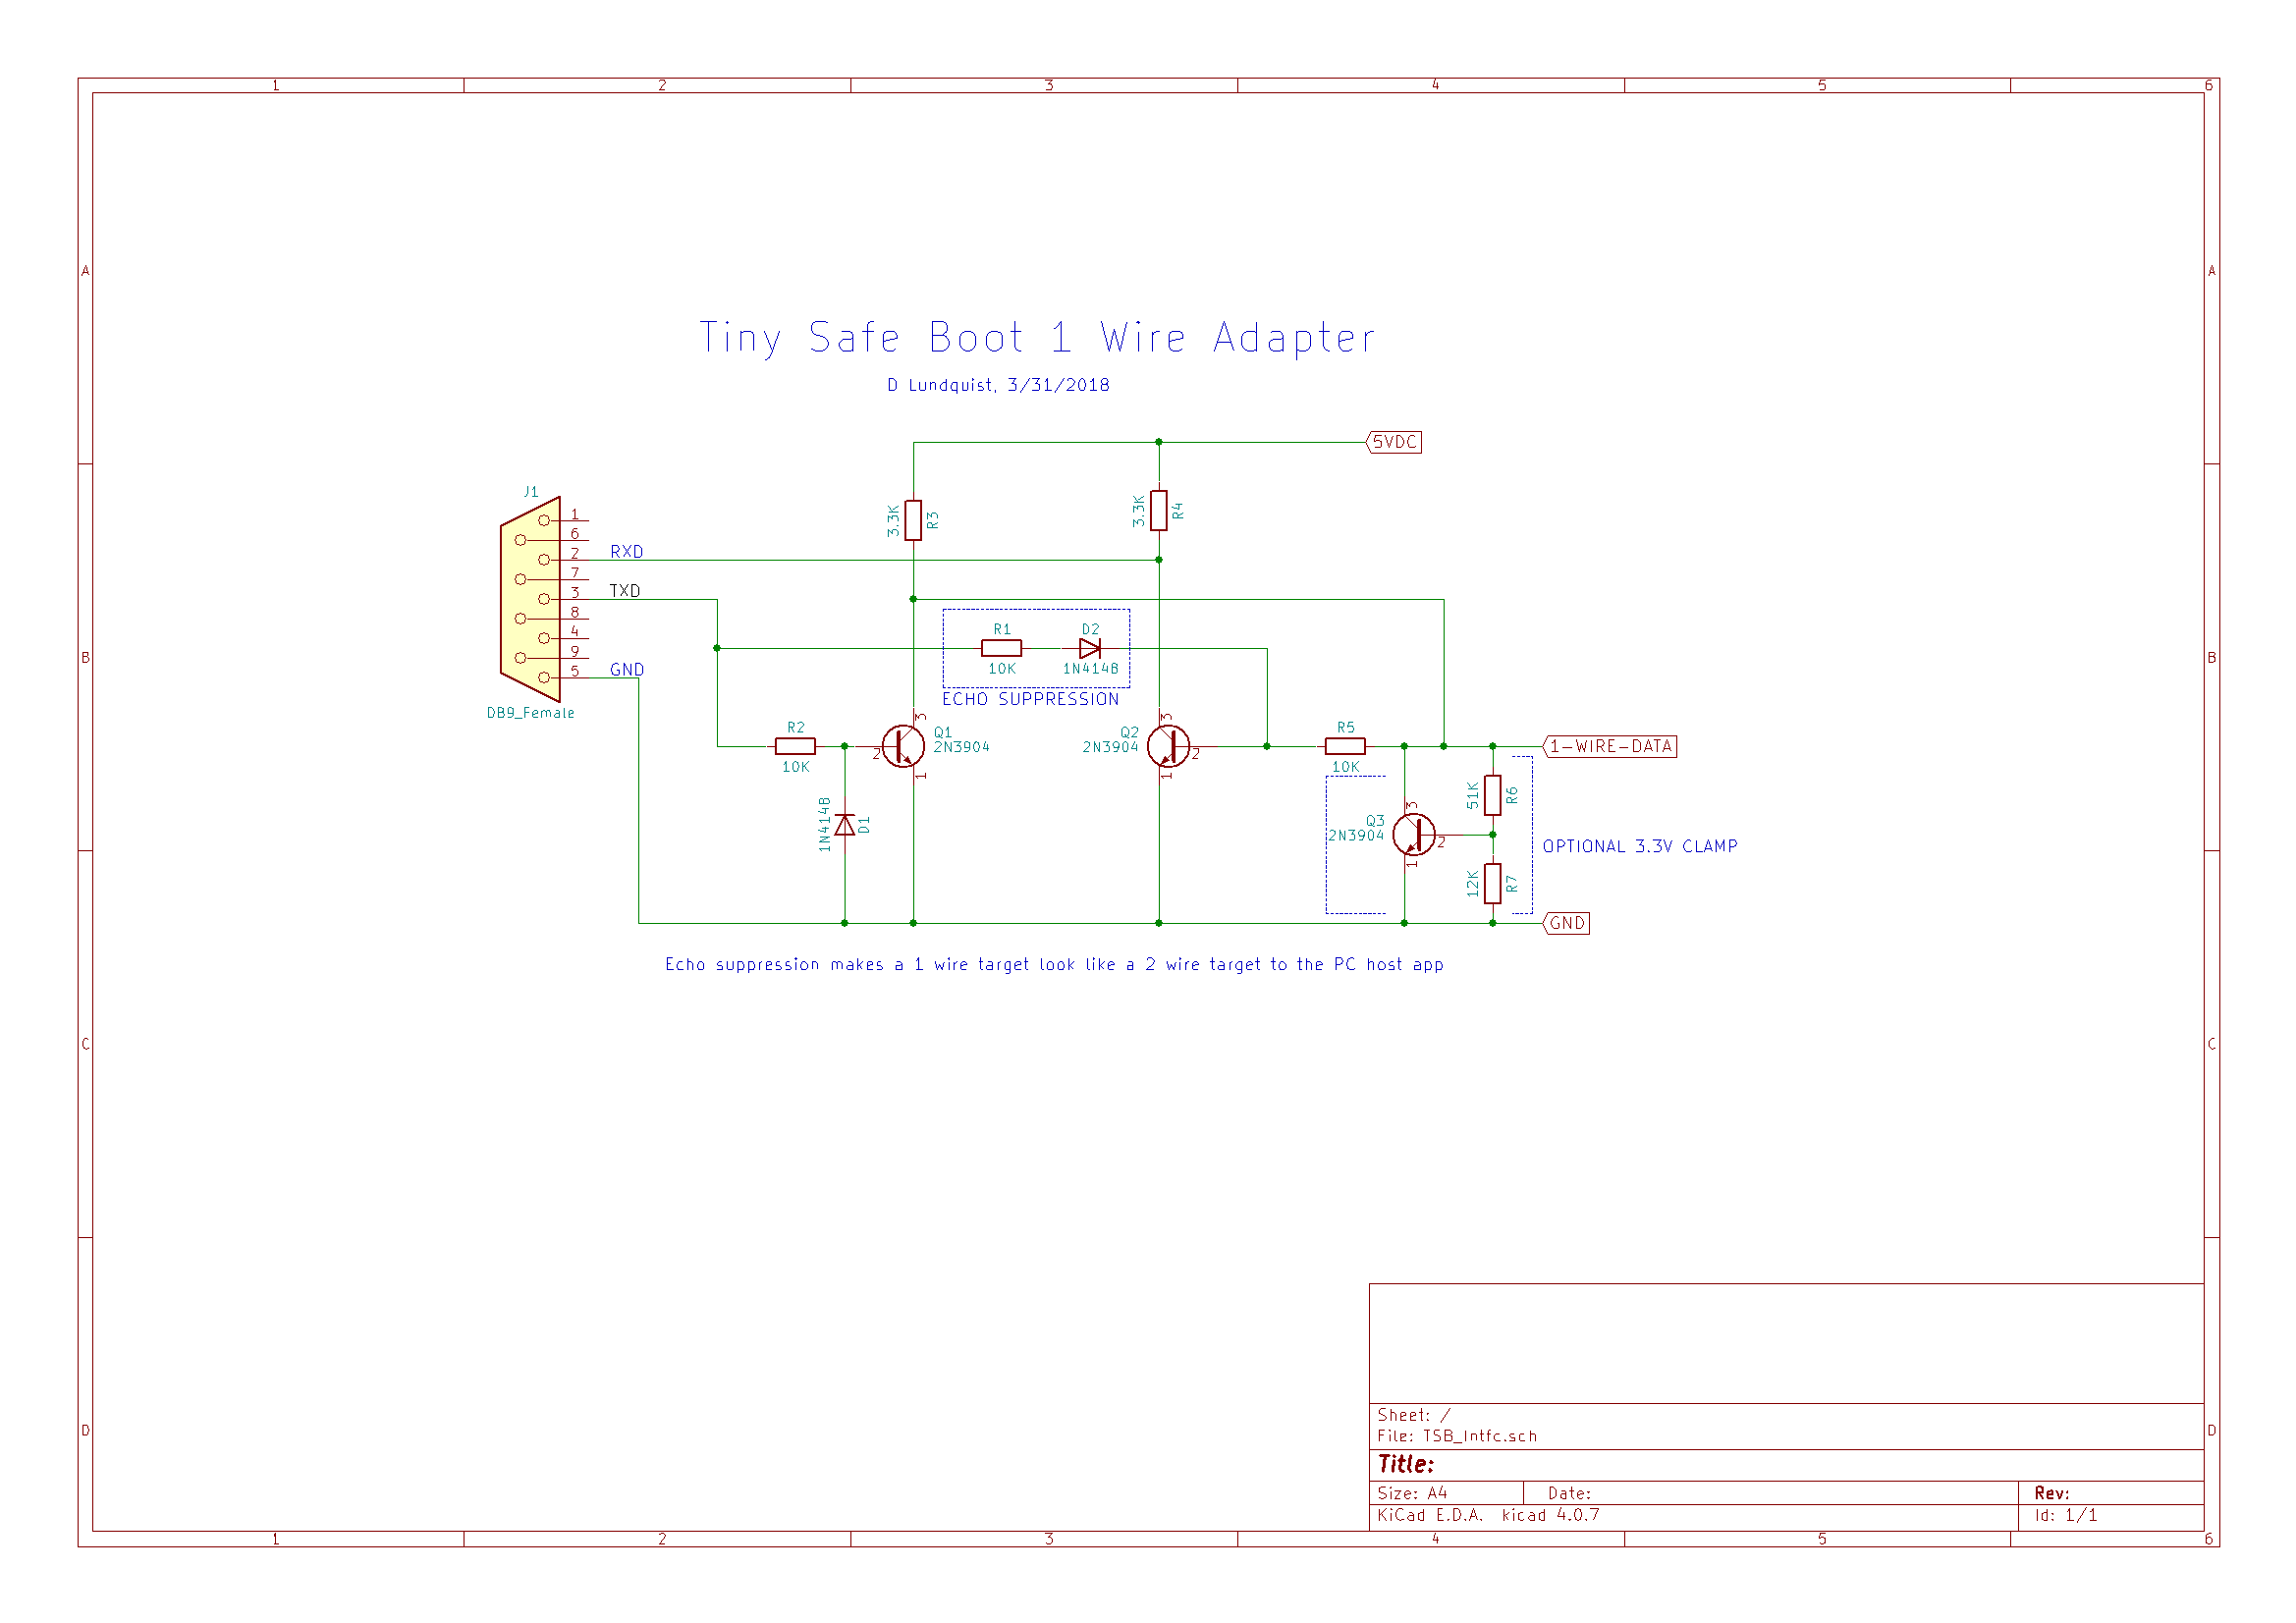 TinySafeBoot 1 Wire Interface Schematic